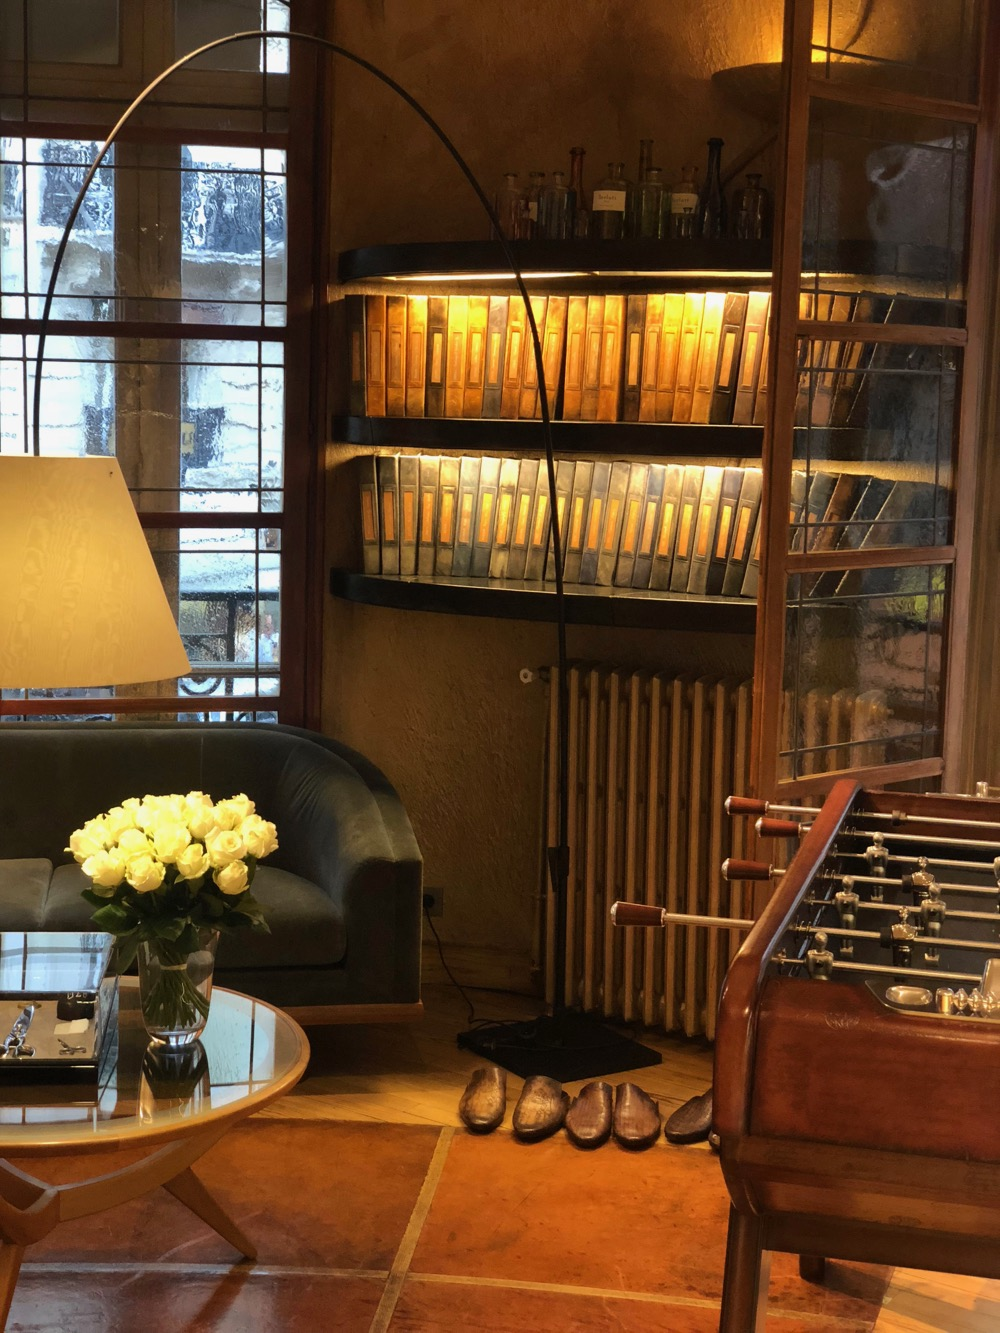 Boutique Berluti, 26 rue Marbeuf, Paris - photo ©classycolibri